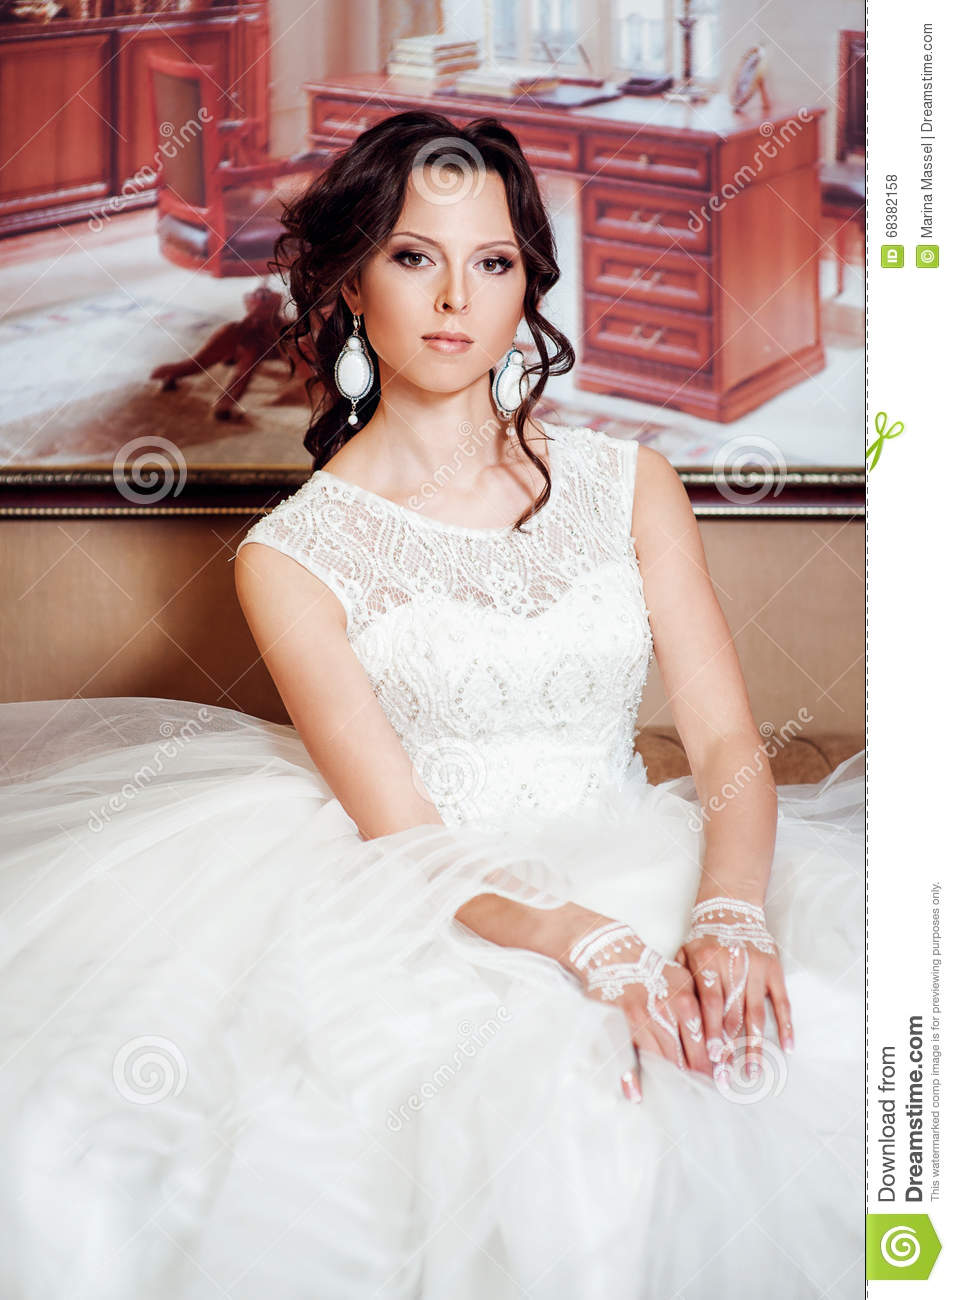 Brunette Woman With Long And Shiny Curly Hair Stock Image